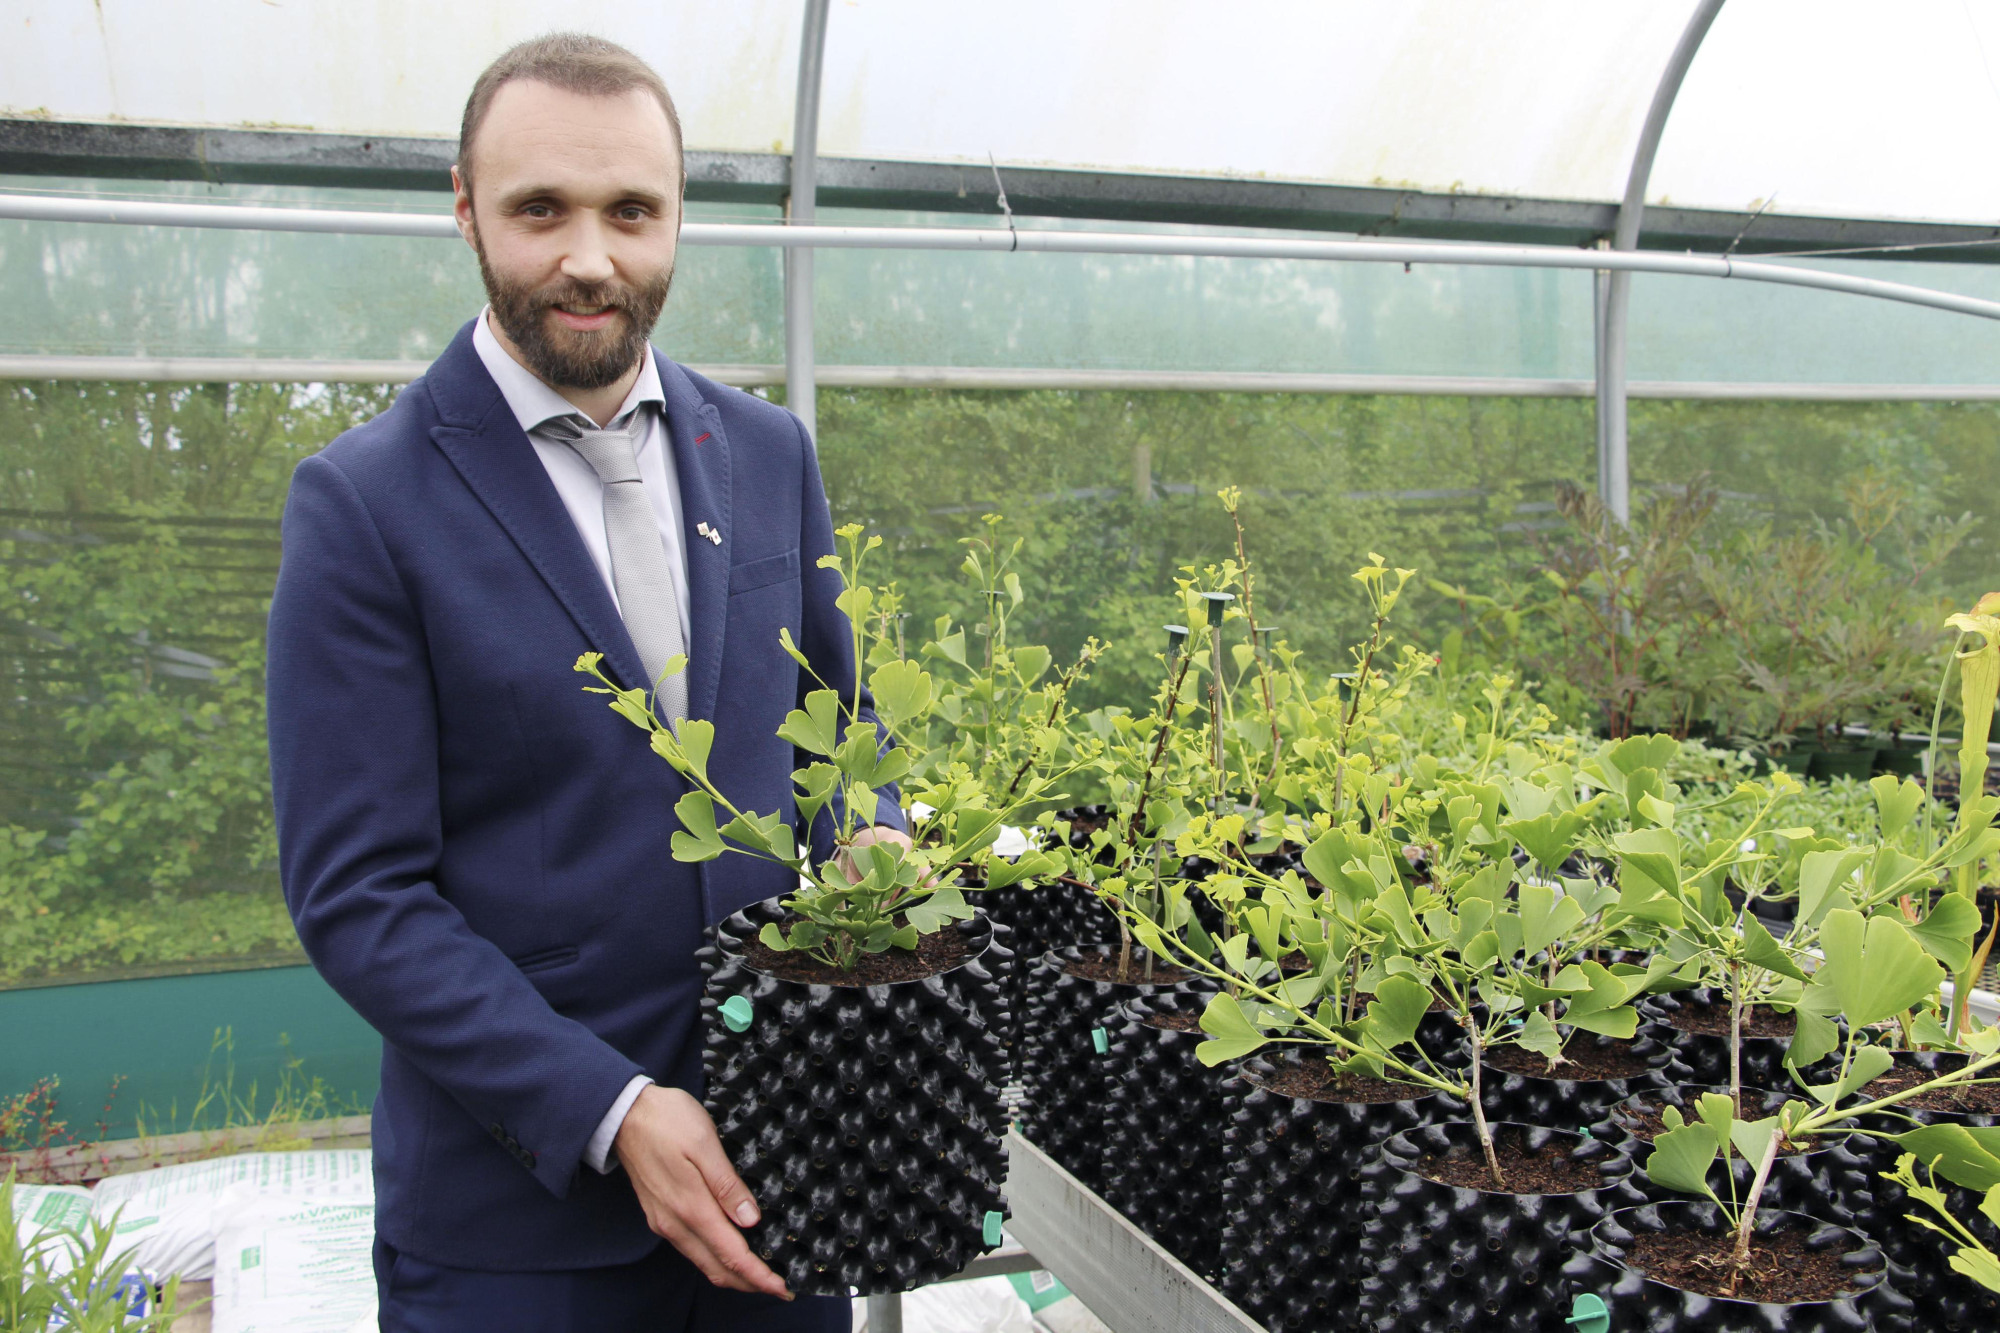 An official at the National Botanic Garden of Wales shows a pot containing a ginkgo tree sapling destined for Japan at the garden in June. | KYODO